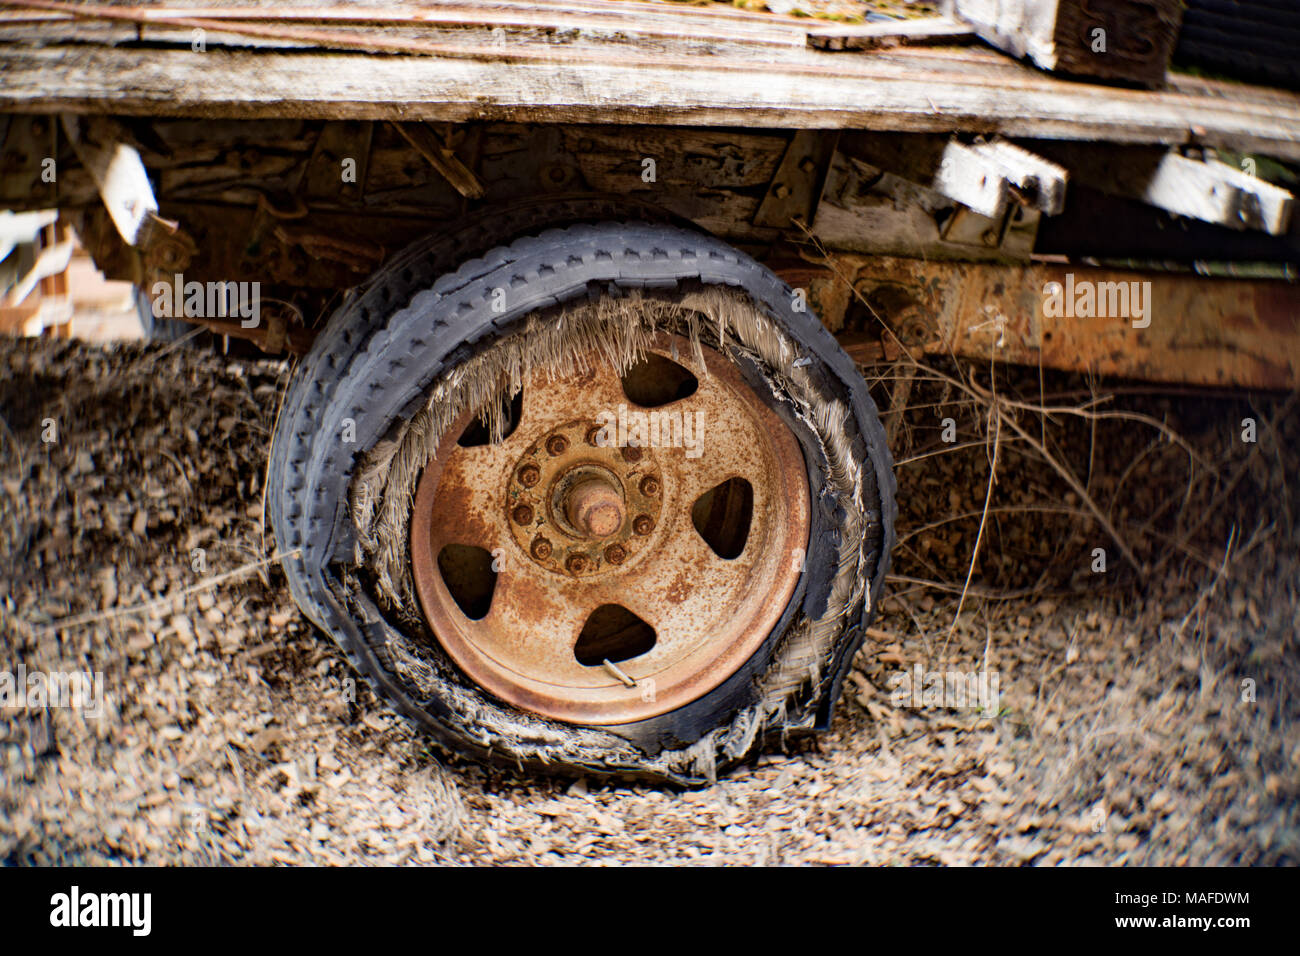 A rusty 10 lug wheel with a blown out bias ply tire of a heavy duty 1935 Chevy flatbed truck, on a hill in an old stone quarry, near Clark Fork, Idaho - Stock Image